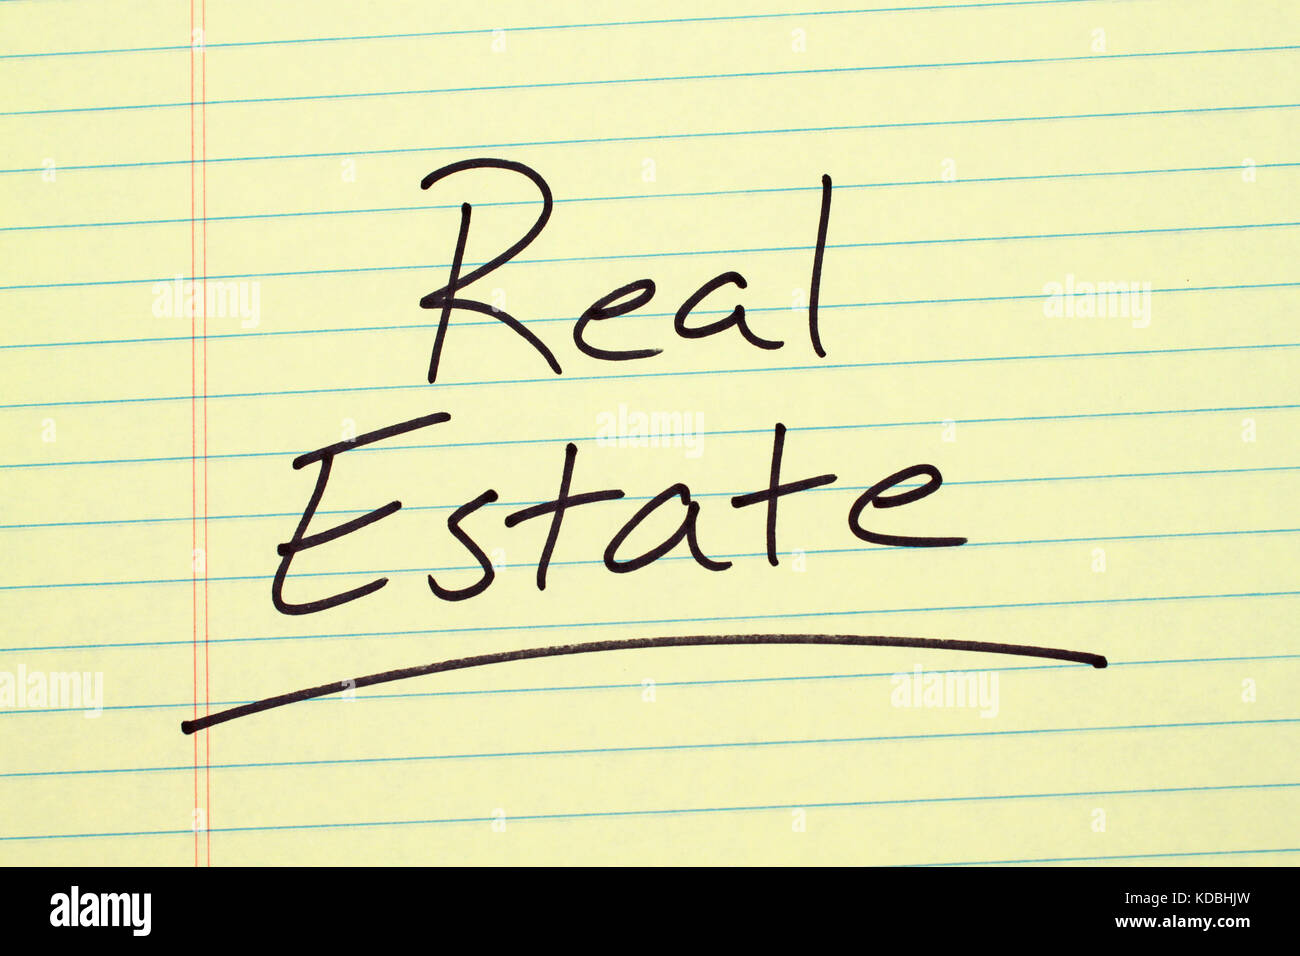 The word 'Real Estate' underlined on a yellow legal pad - Stock Image